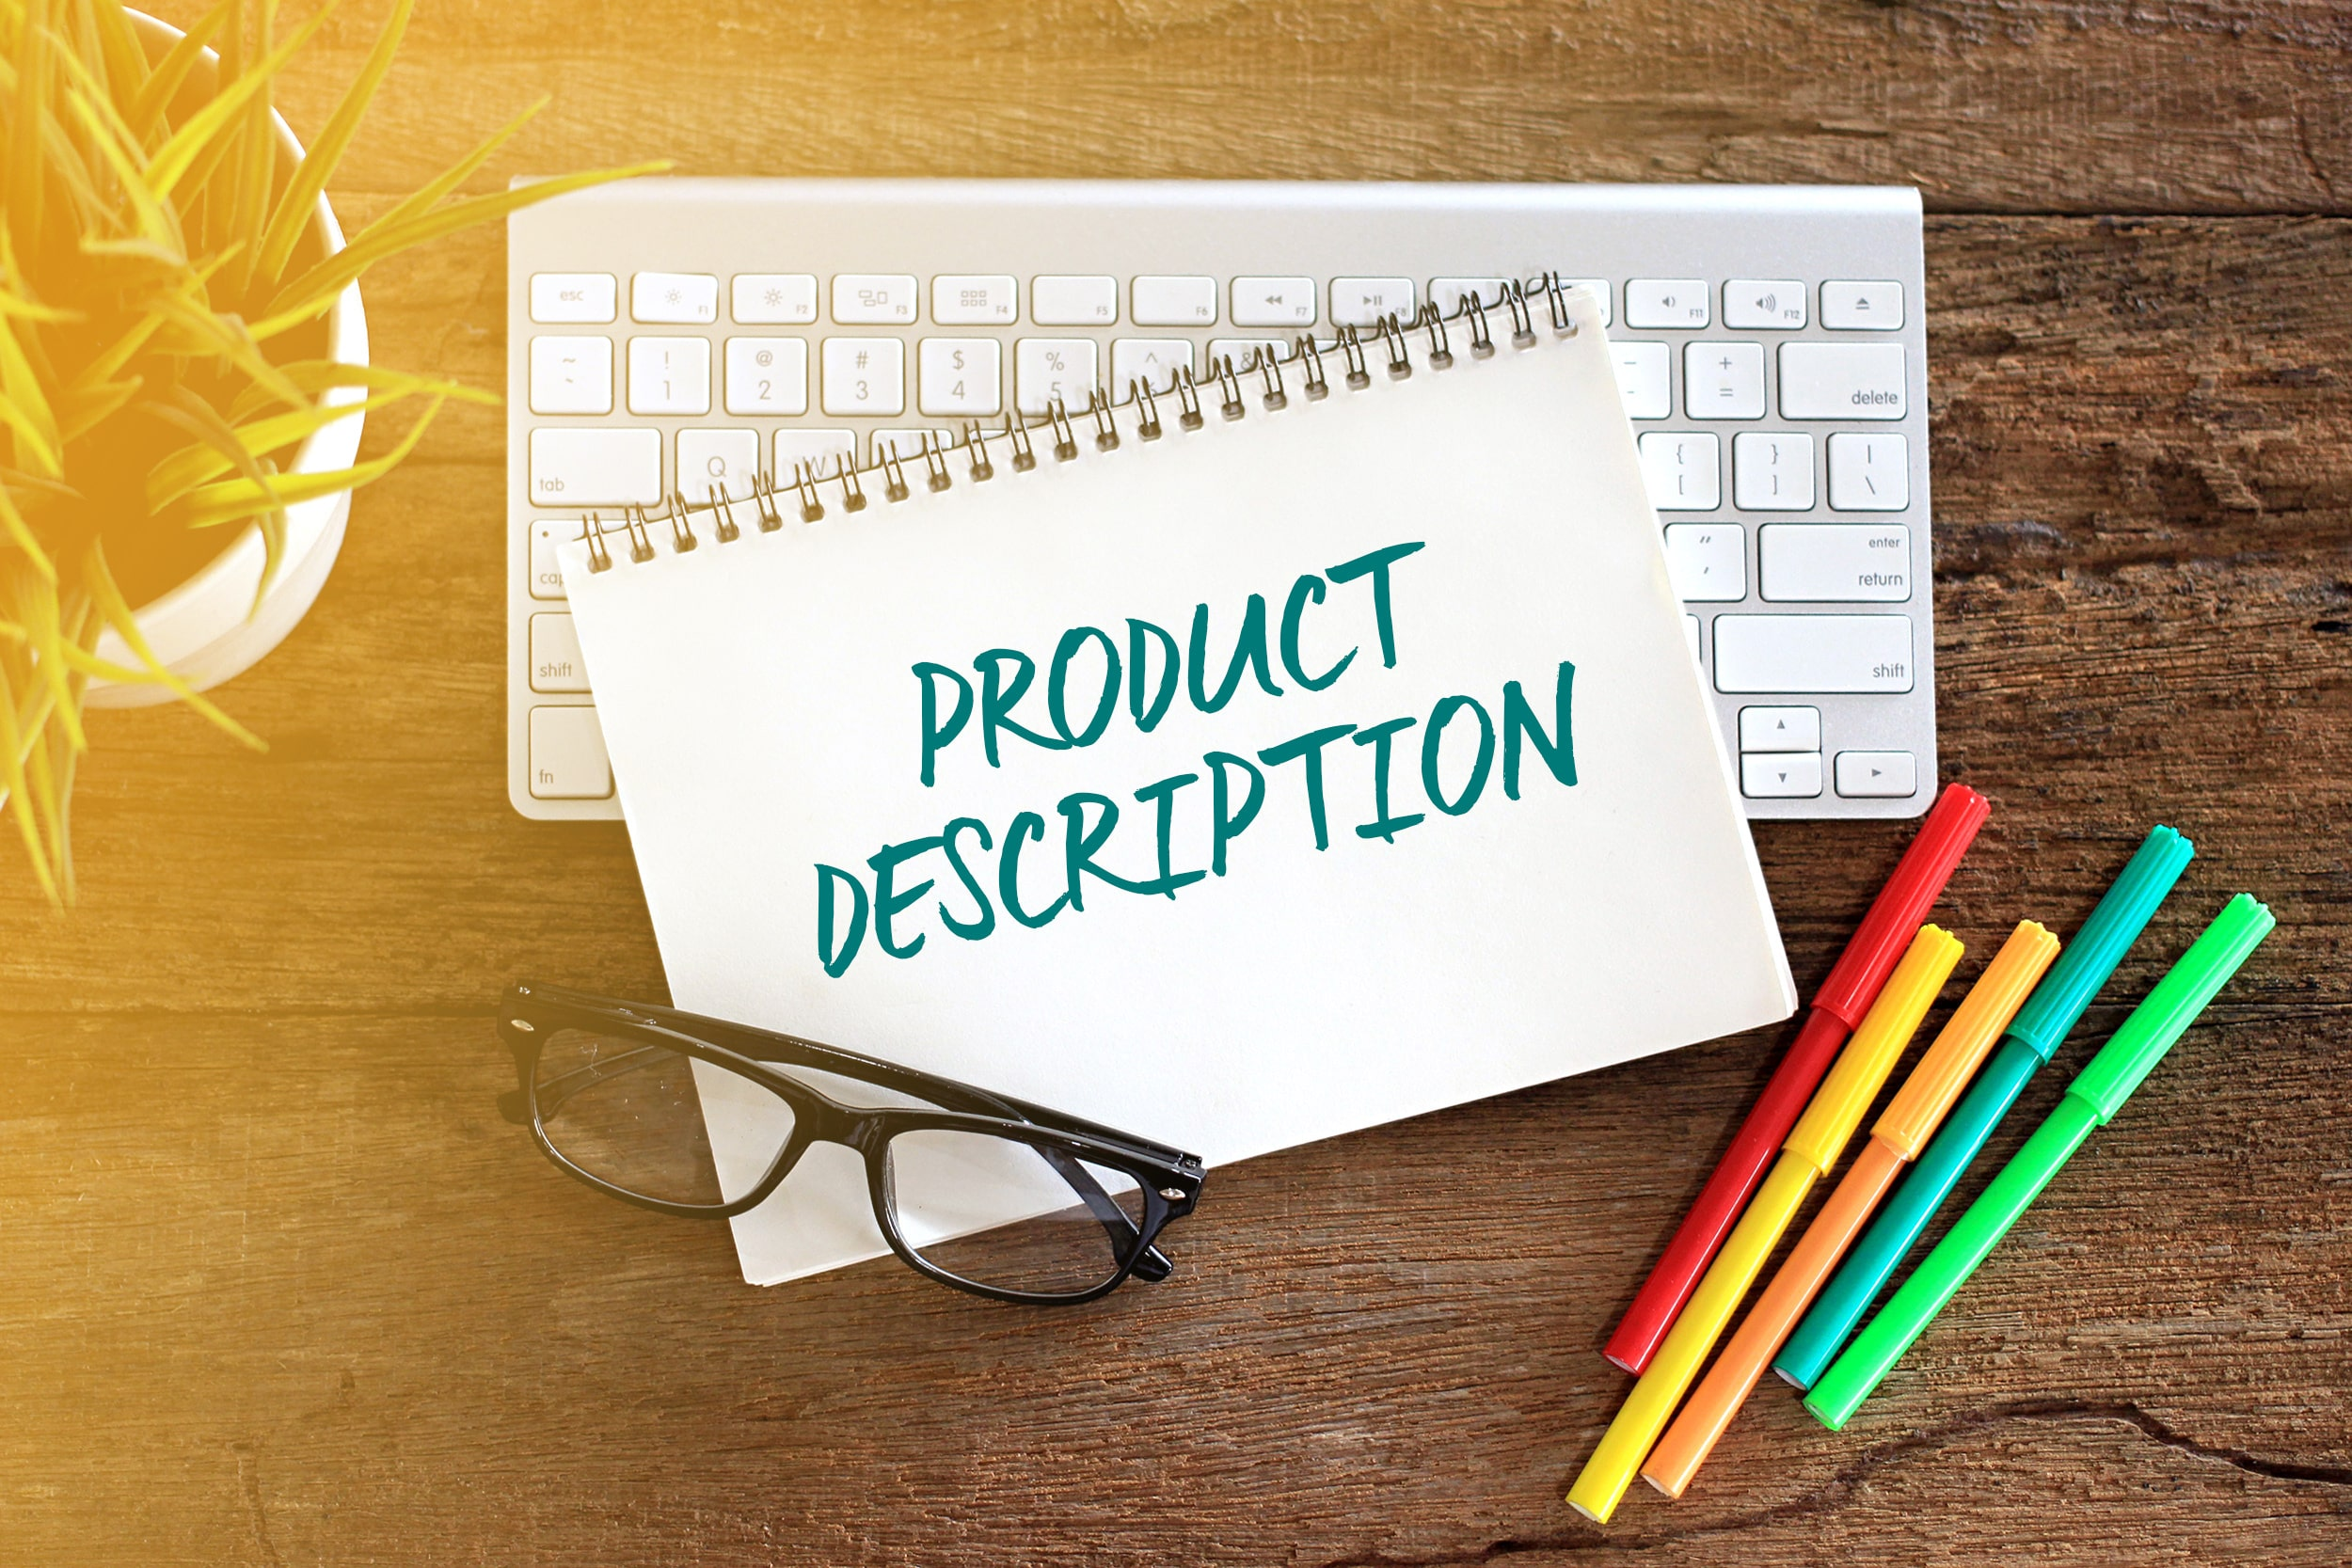 7 Simple Tips on Writing Brilliant Product Descriptions to Increase Sales